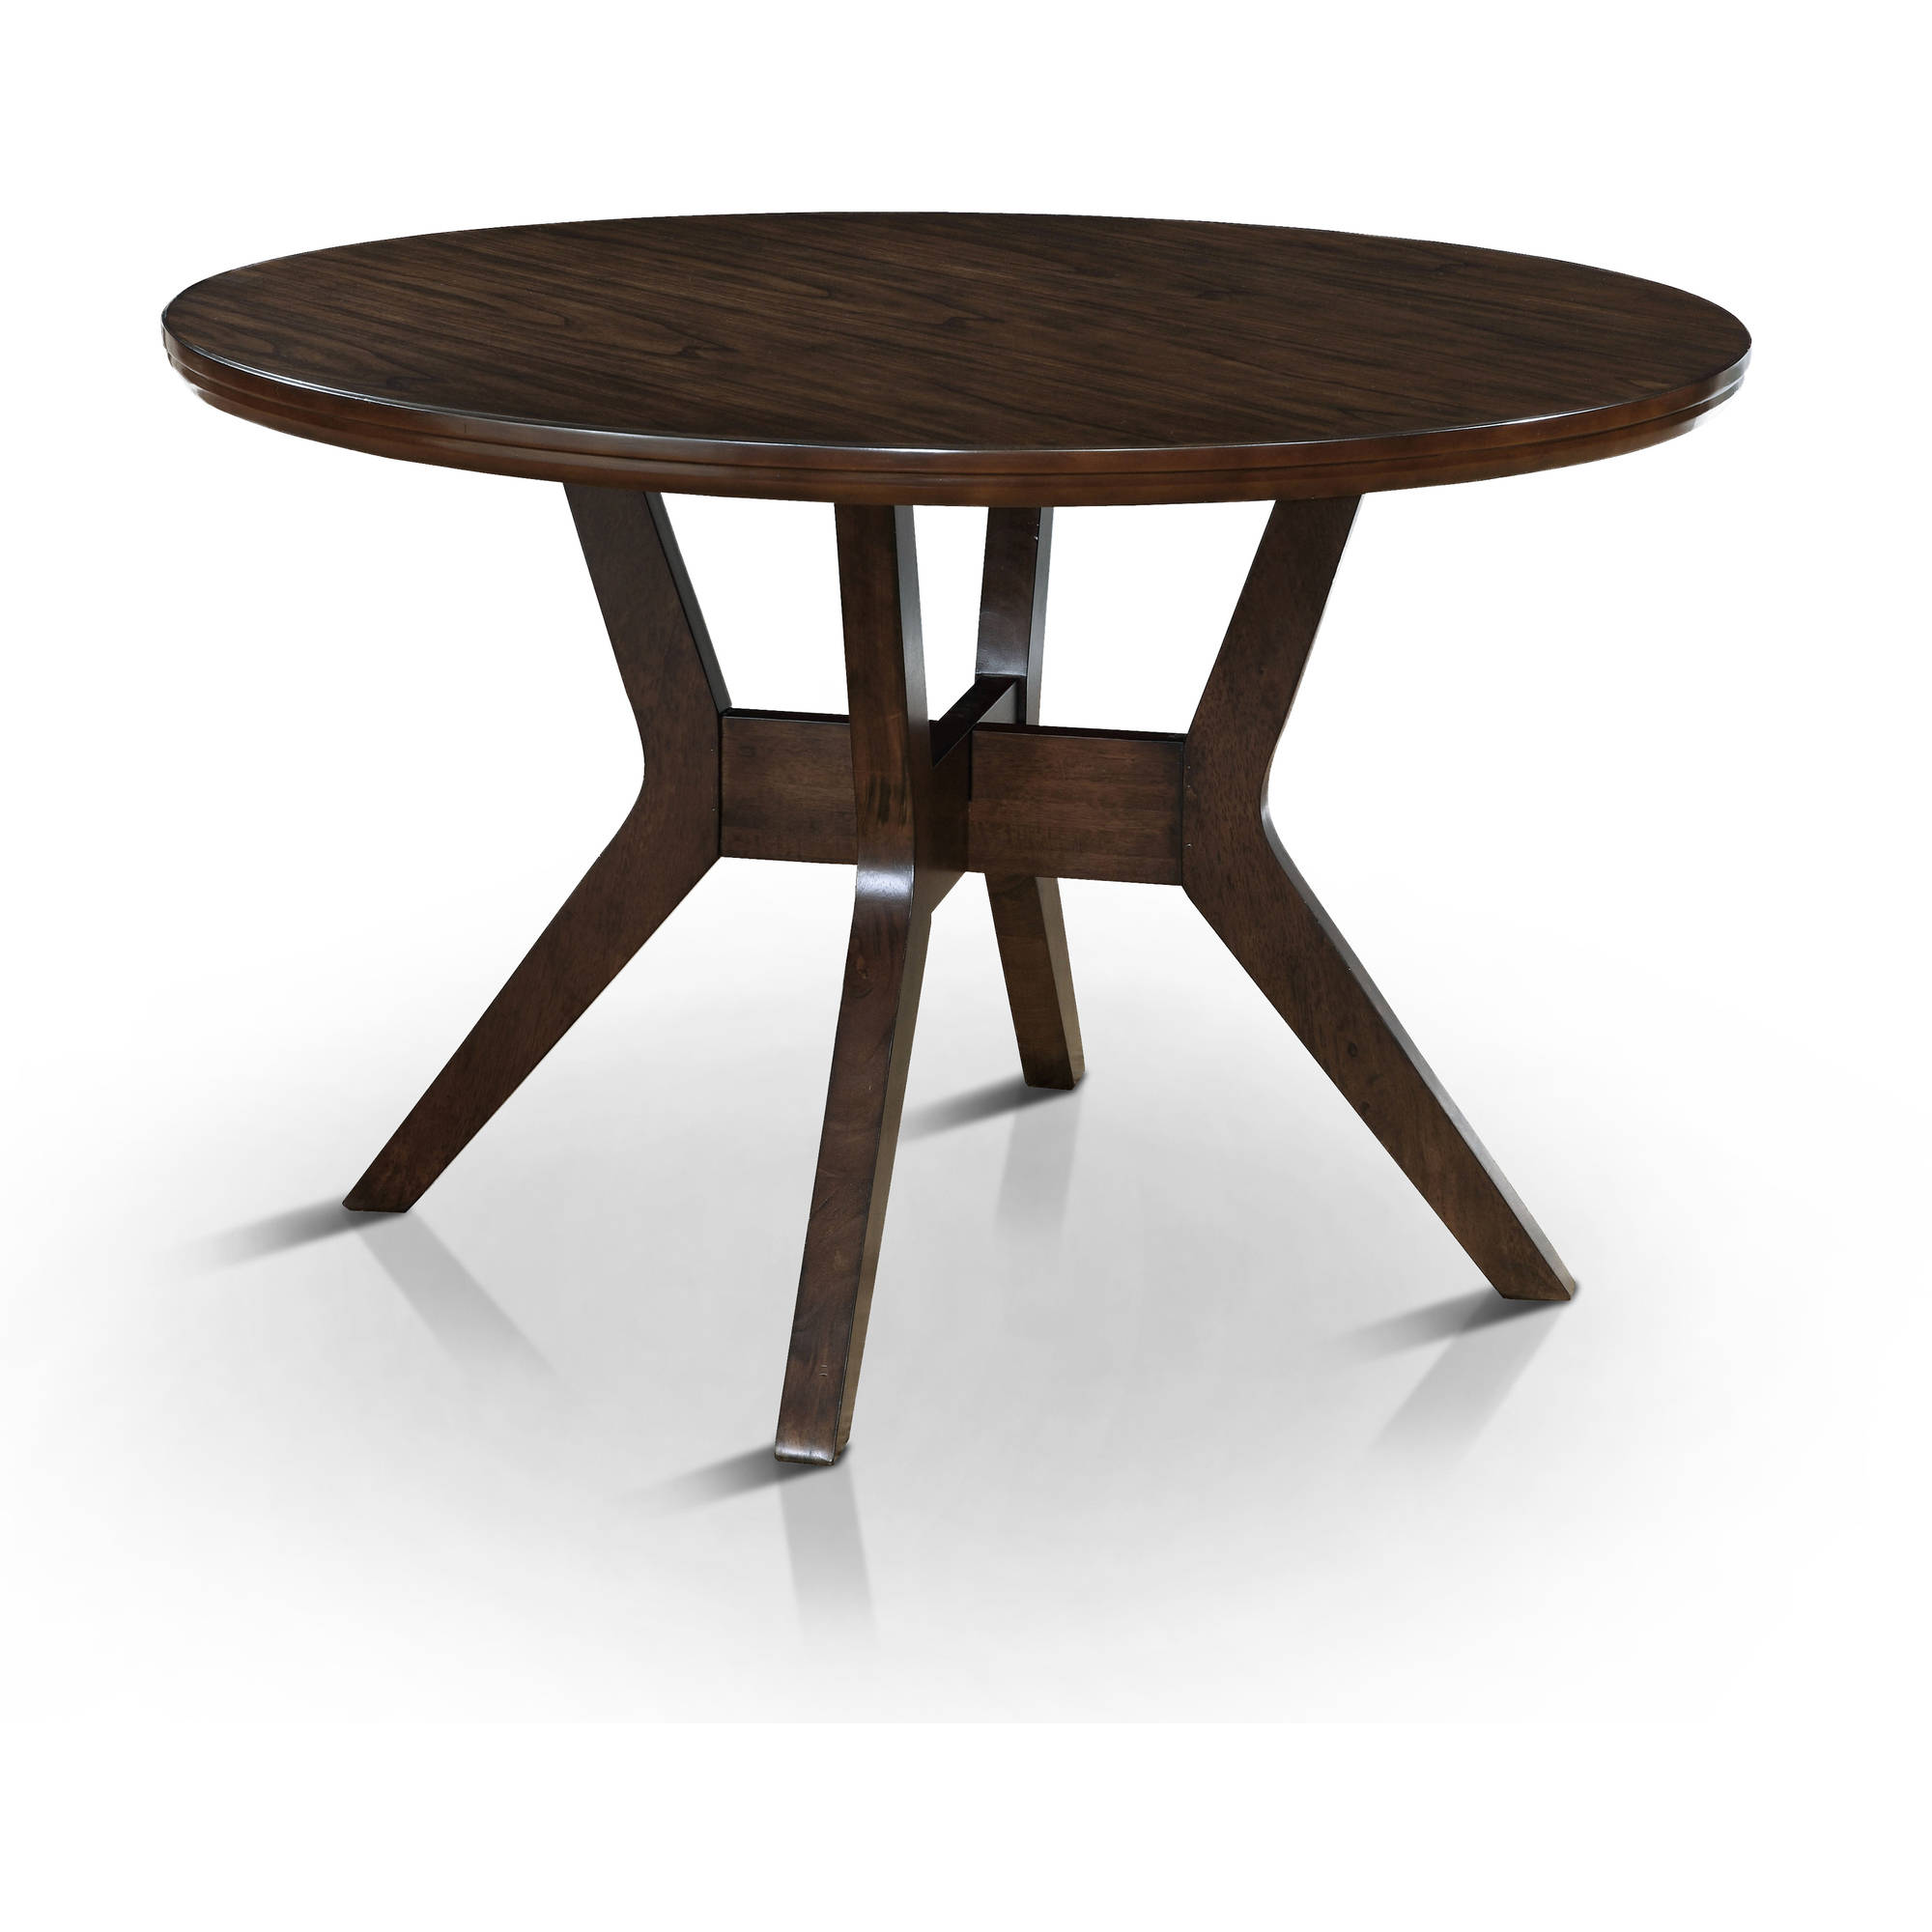 Furniture of America Lailina Mid-Century Round Dining Table, Gray by Furniture of America